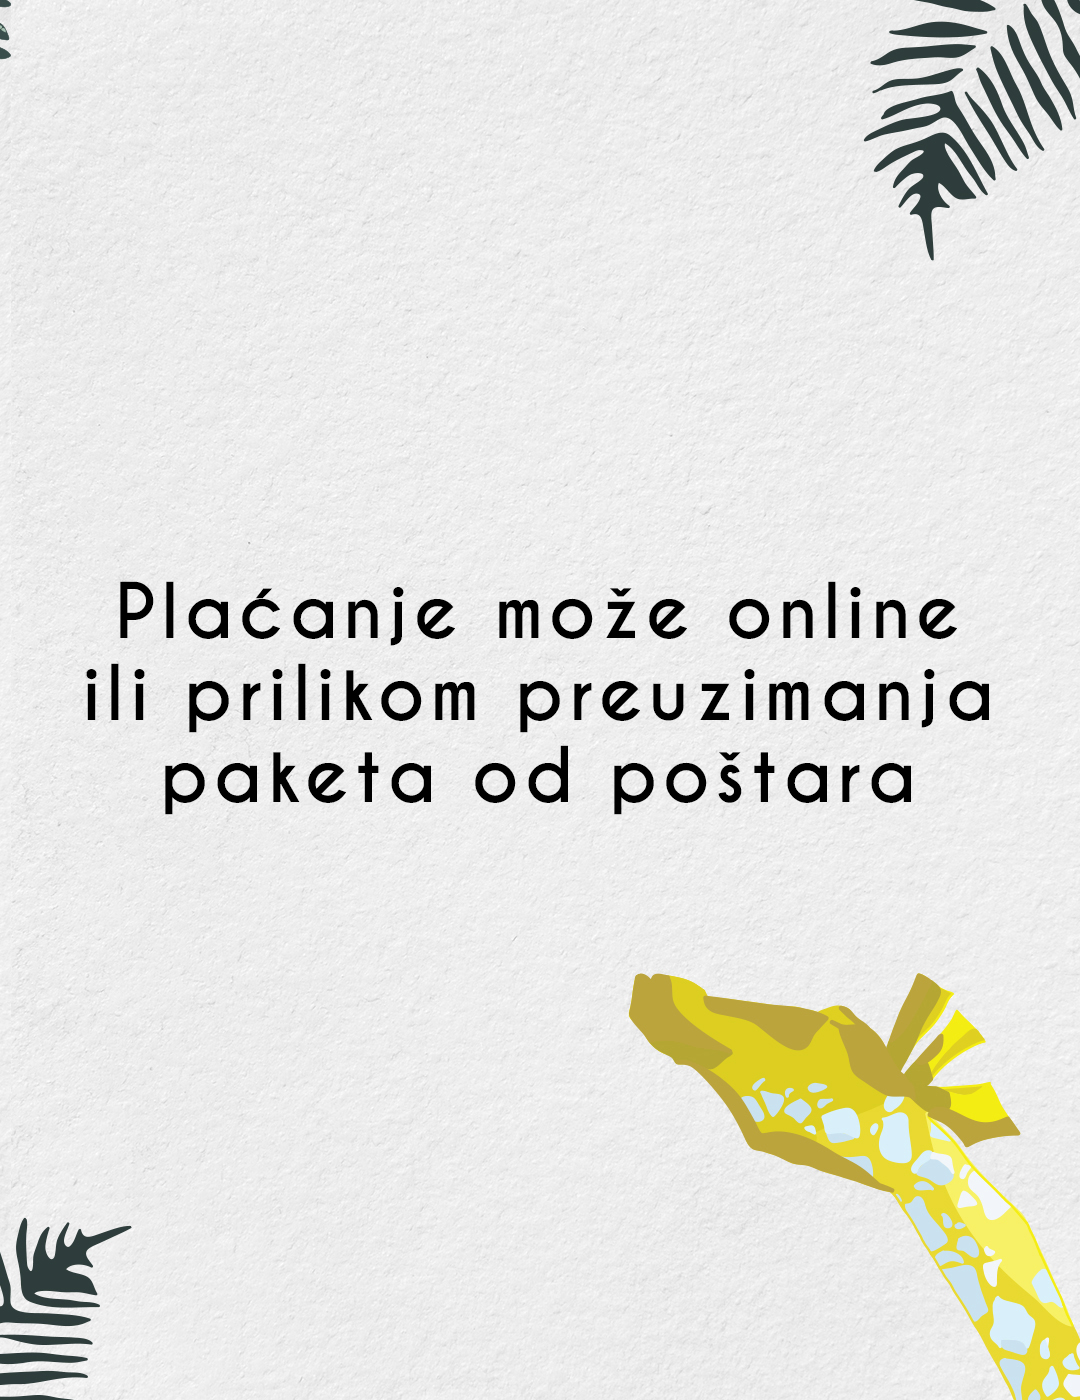 Happy Giraffe benefiti placanje online pouzece